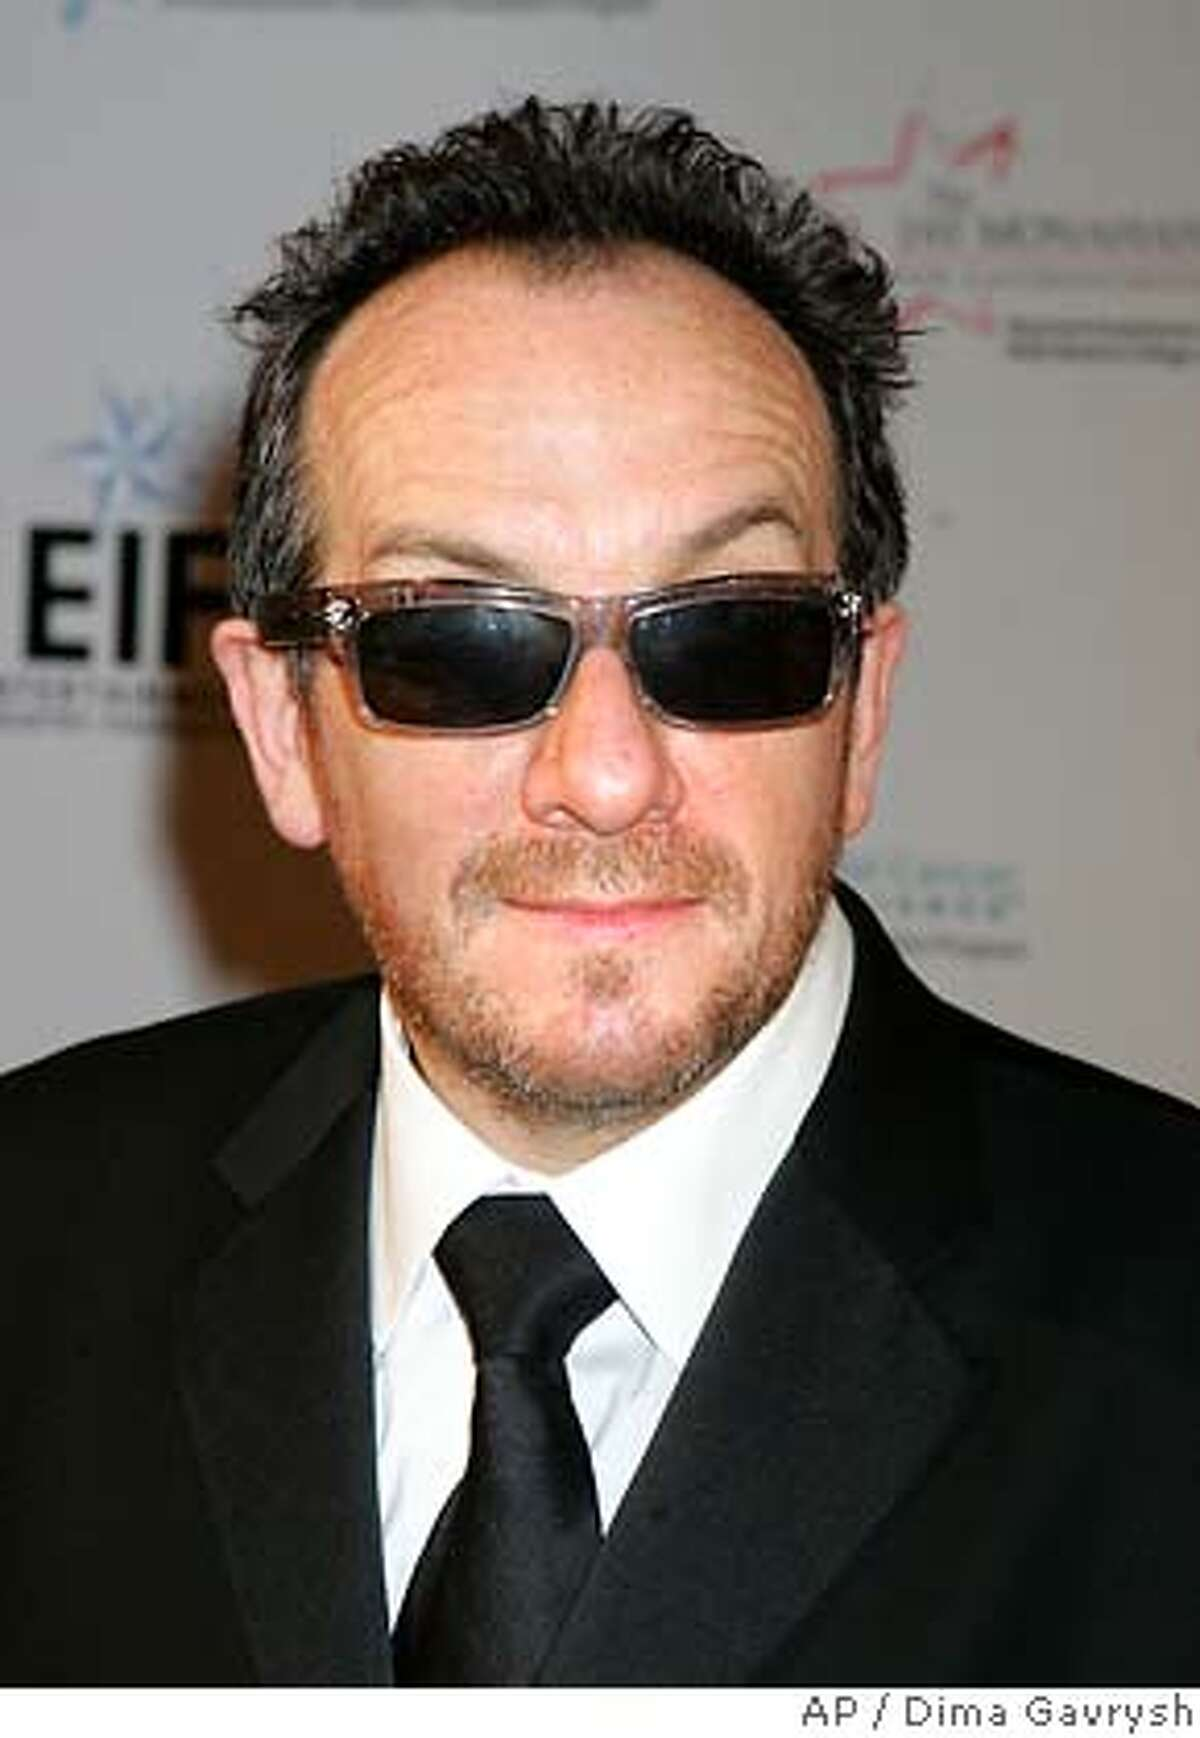 """Elvis Costello, attends the """"Hollywood Meets Motown"""" fundraiser, Wednesday, March 15, 2006, in New York. The event benefits EIFs National Colorectal Cancer Research Alliance and the Jay Monohan Center for Gastrointestinal Health at New York-Presbyterian Hospital / Weill Cornell Medical Center, named in honor of Katie Courics late husband, who lost a nine-month battle with colon cancer in 1998, at the age of 42. (AP Photo/Dima Gavrysh)Ran on: 03-24-2006 Josh Ritter comes to Great American Music Hall June 7."""